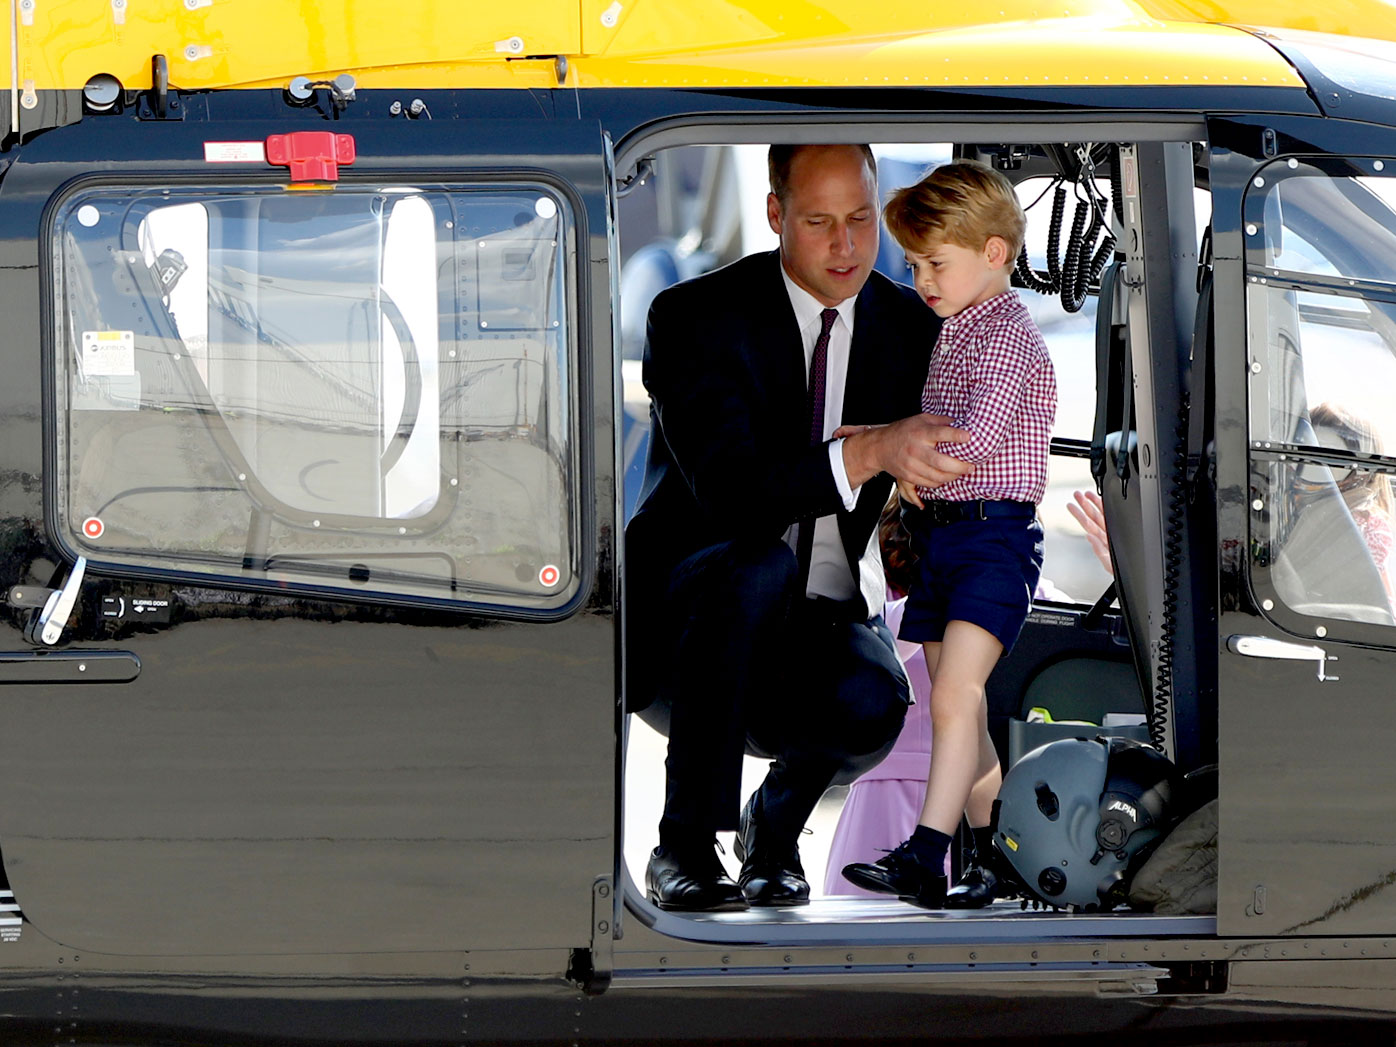 Prince George explores a helicopter with his father during a royal tour of Poland and Germany this month. (AAP)